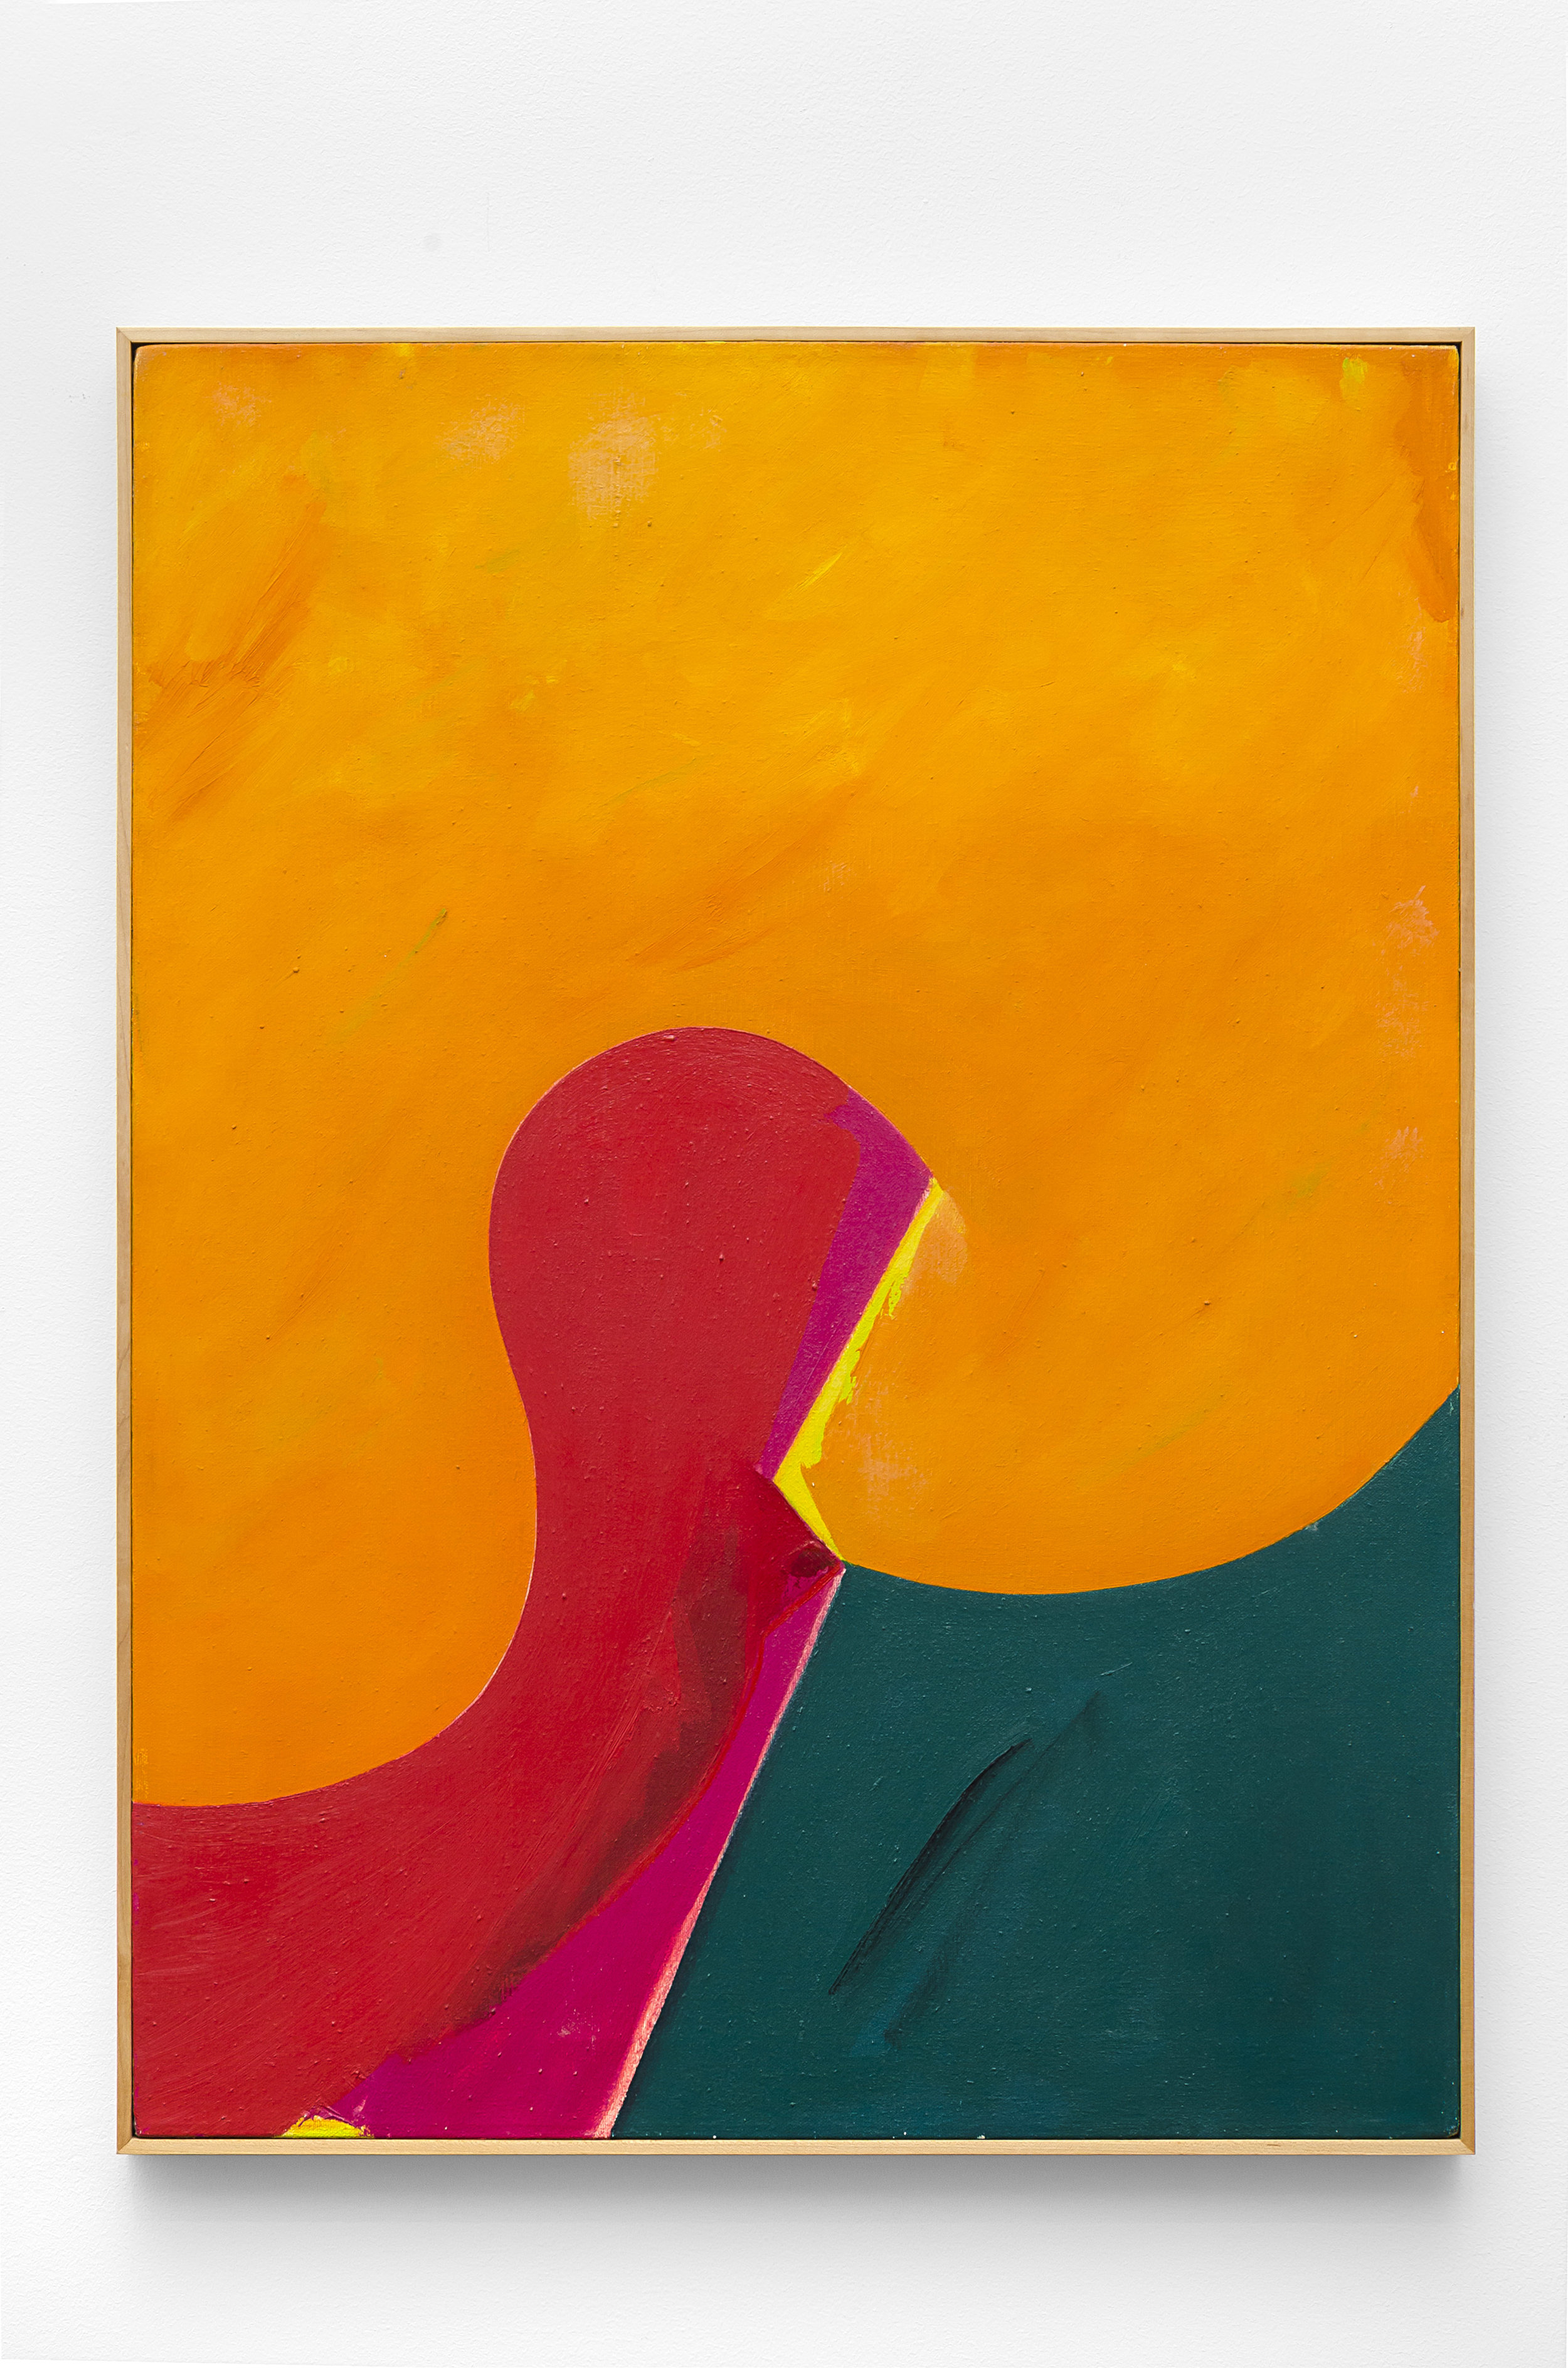 Nov #2 , 1968  acrylic on canvas 30 1/2 x 22 1/2 inches; 77.5 x 57.2 centimeters  $14,000